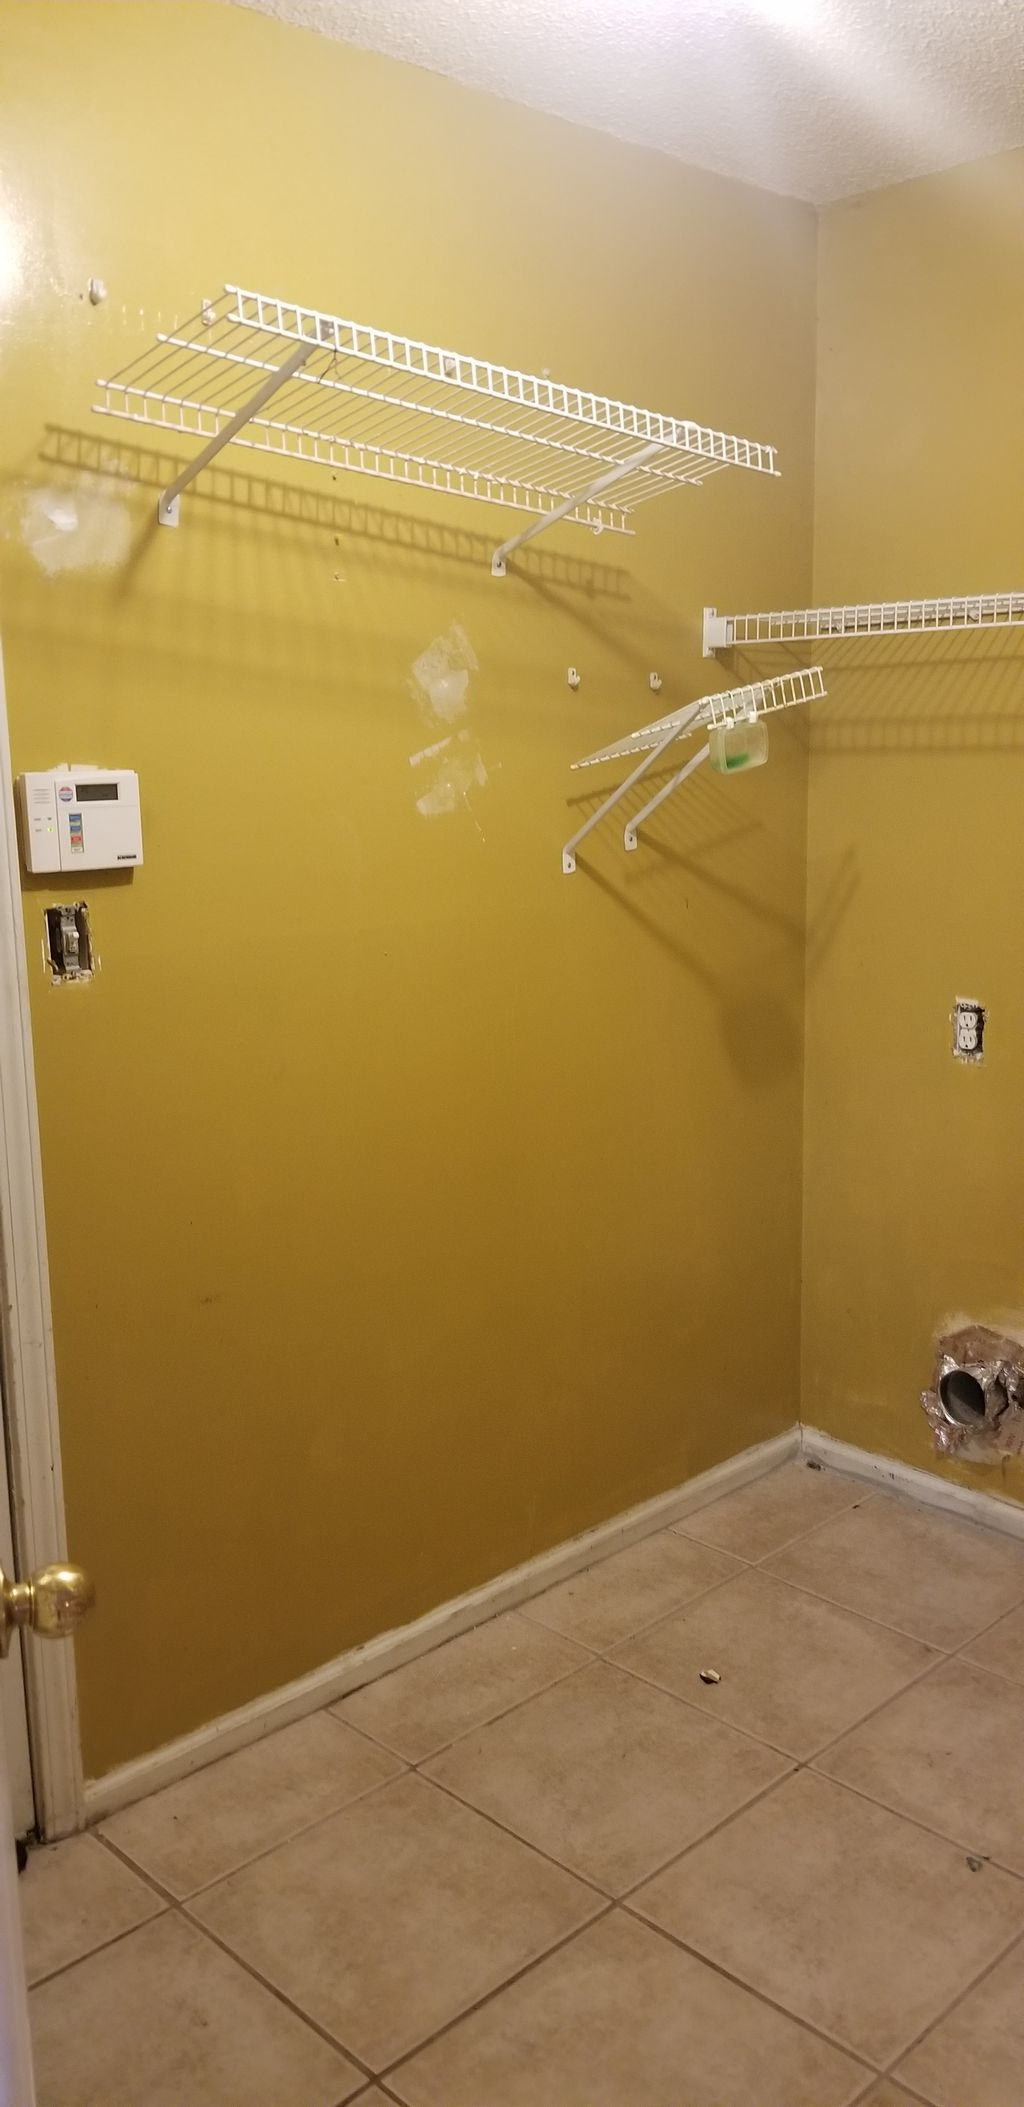 4BR-3BA-Interior Painting FULL WALL SPACE COVERAGE